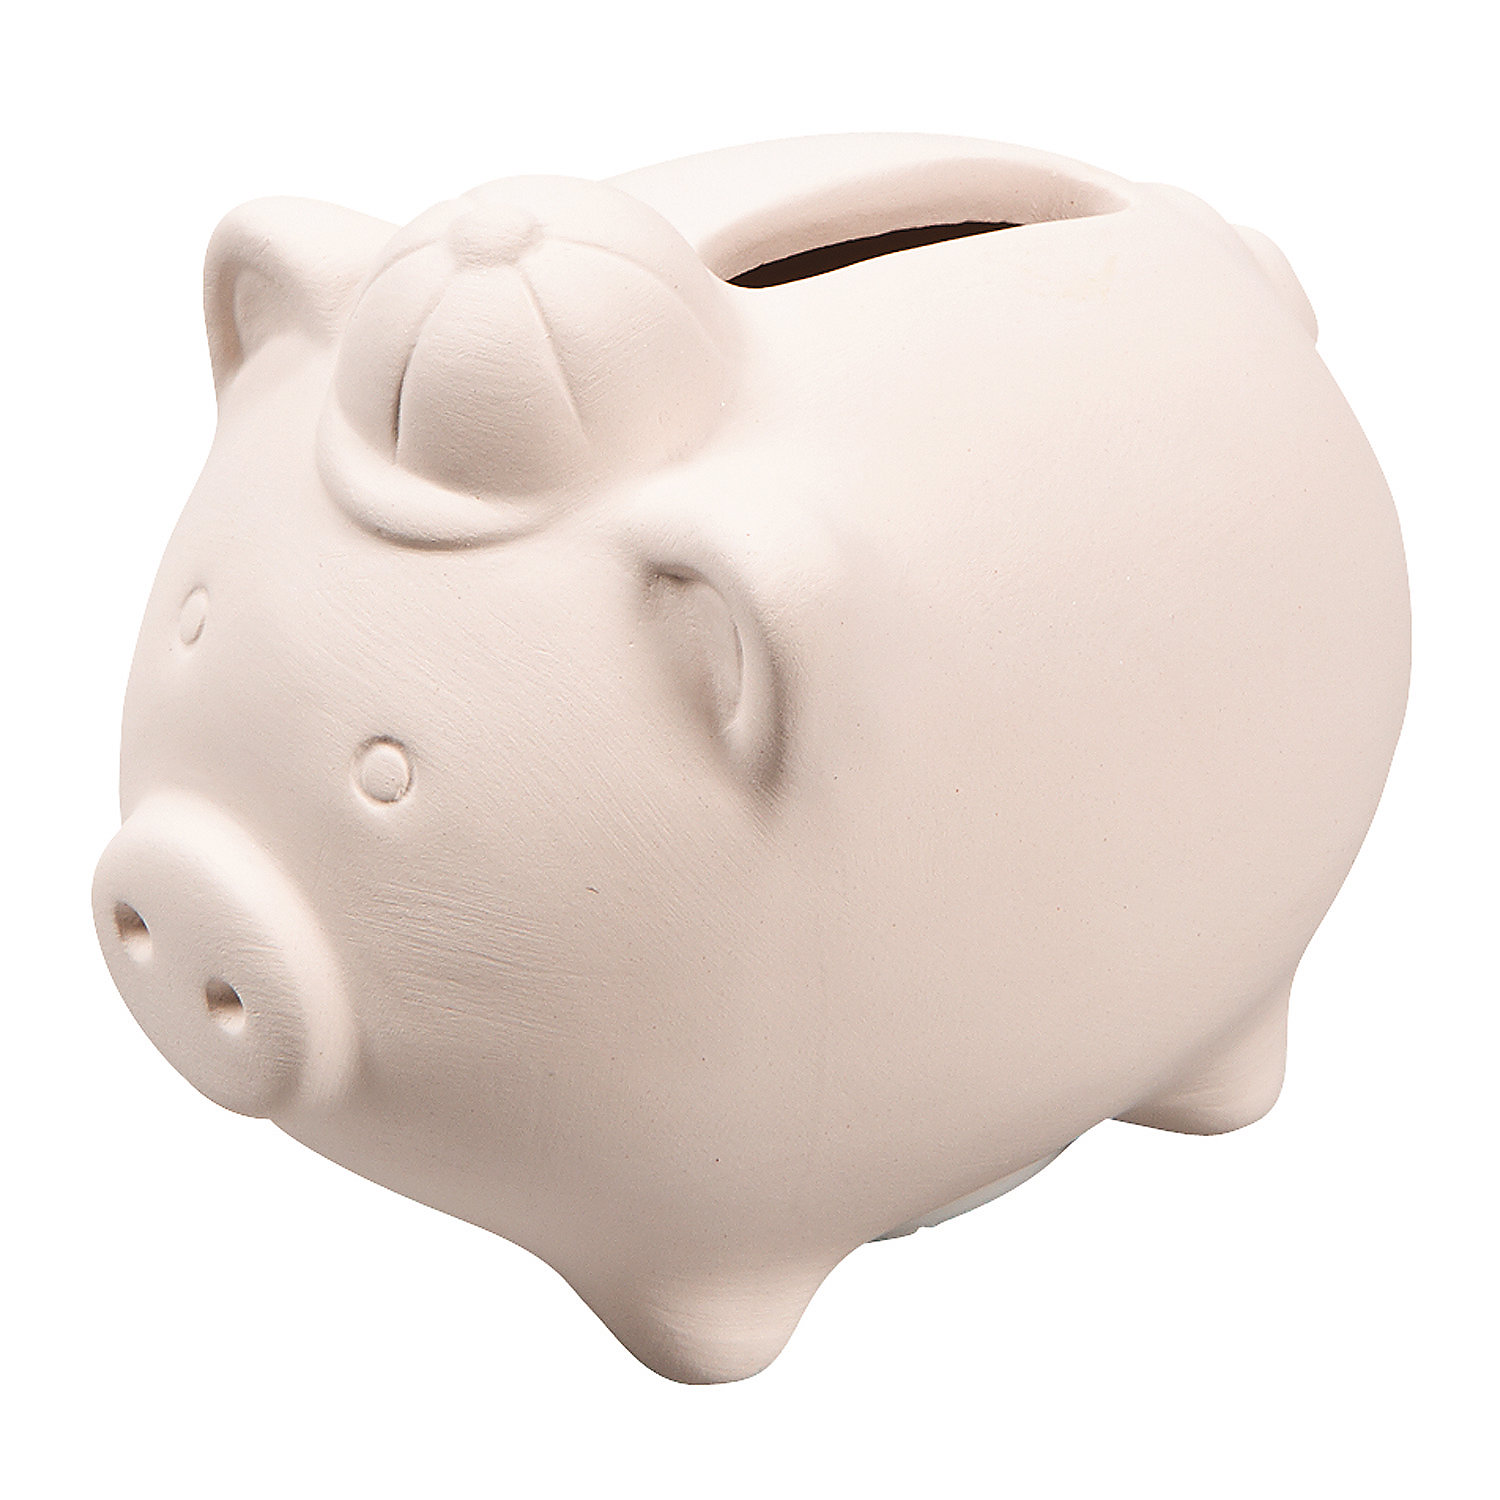 multivarkaixm2f.ga: diy piggy bank. Includes metallic pink ceramic piggy bank and () sticky gems. White Piggy Banks, Piggy Bank for Girls Boys Kids A New for White Piggy Bank for Boys,Girls,Kids,Adult Coin Bank. by KNRAGHO. $ $ 15 50 Prime. FREE Shipping on eligible orders. out of 5 stars 5.